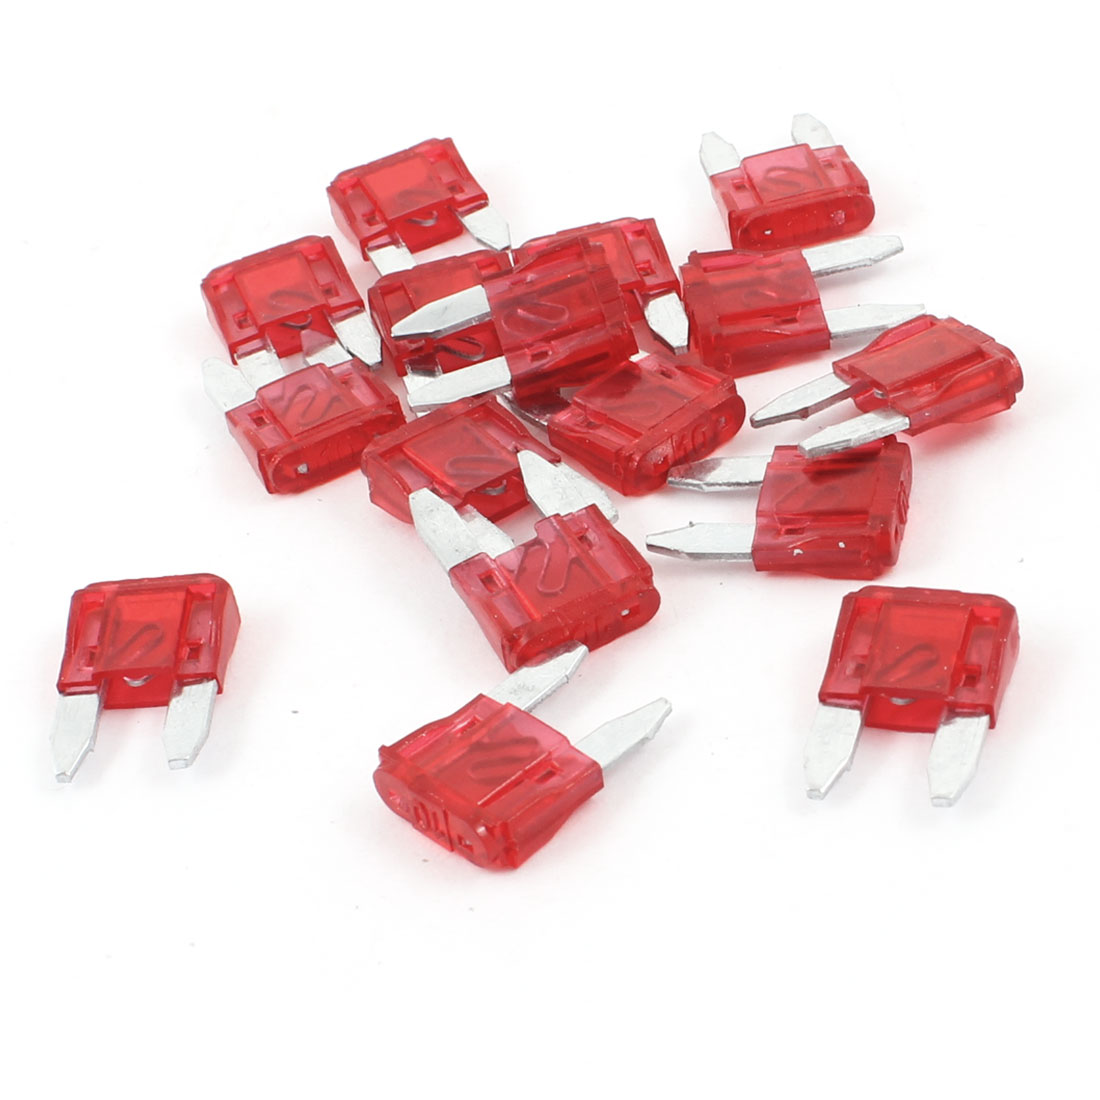 16 Pcs 10A Small Size Blade Fuses Red for Vehicle Car Auto Stereo